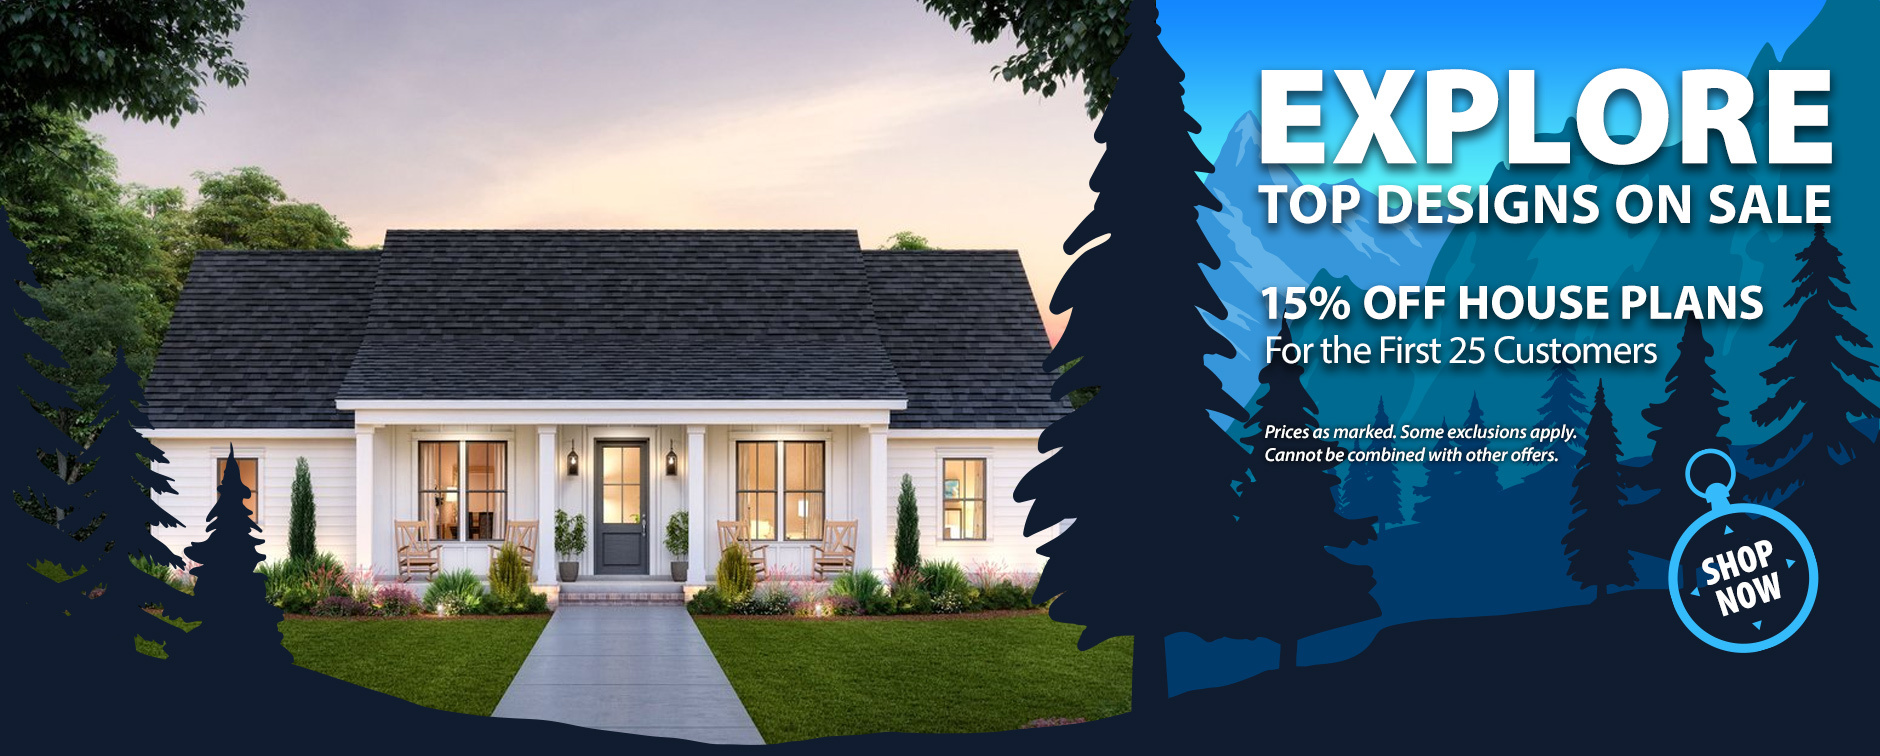 Home Plan Sale 15% Off Layouts